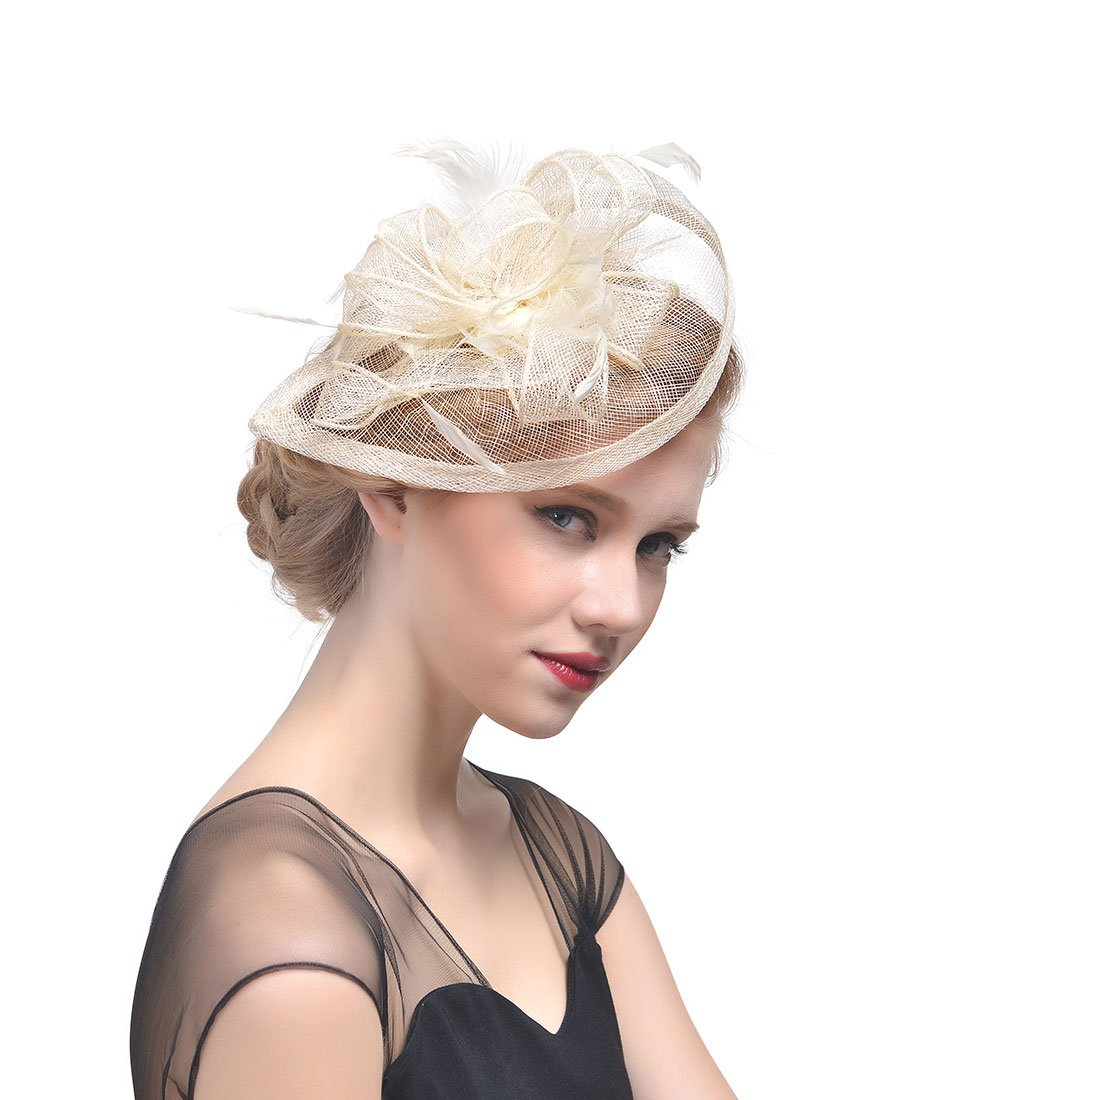 FeiYu Crafts Penny Mesh Hat Fascinator with Mesh Ribbons and Ivory Feathers by FeiYu Crafts